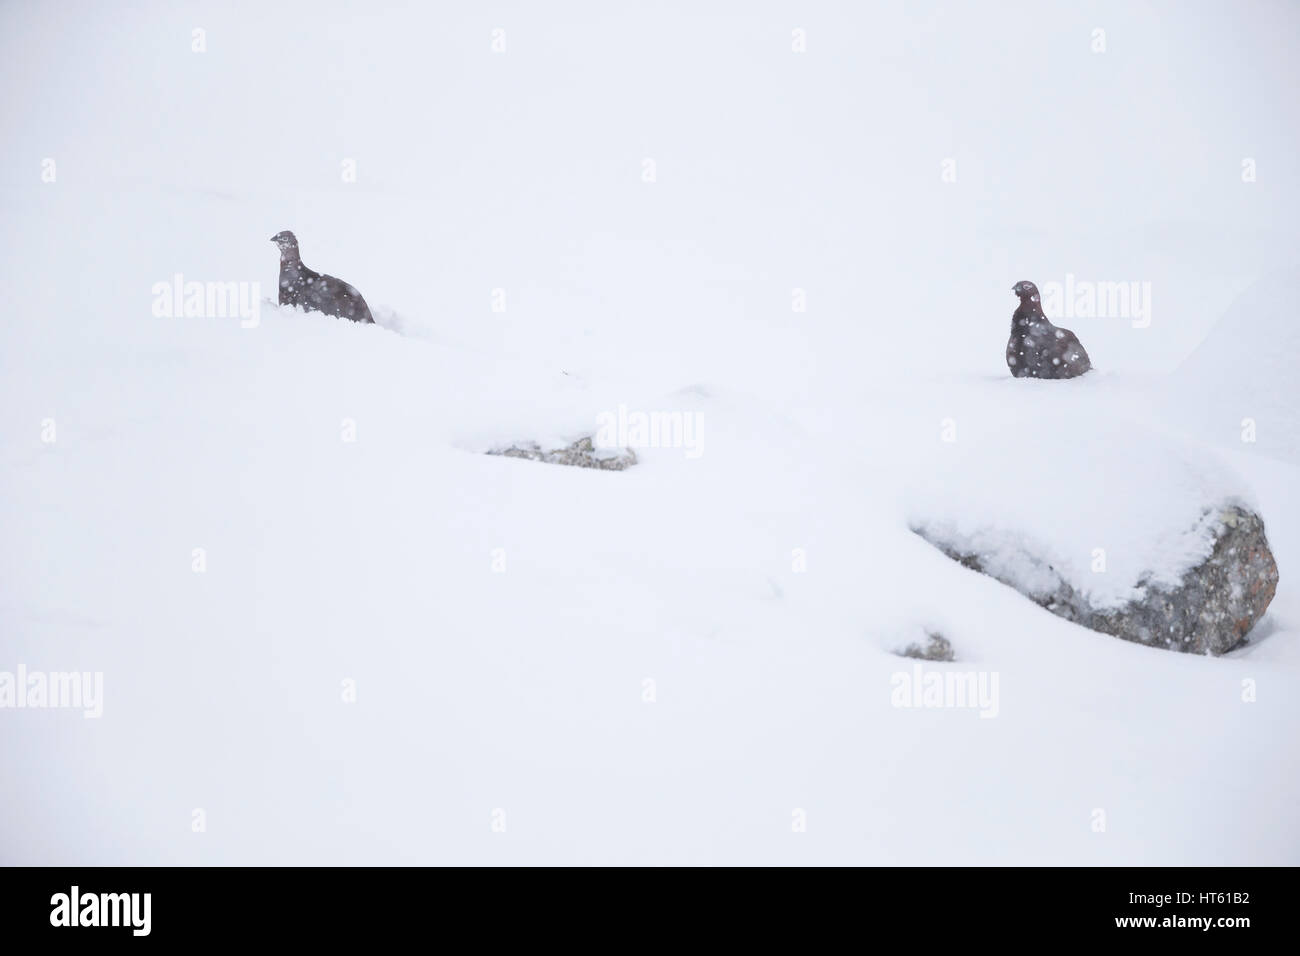 Red grouse Lagopus lagopus scotica, pair, buried in the snow, Strathdearn, Highlands, UK in February. - Stock Image